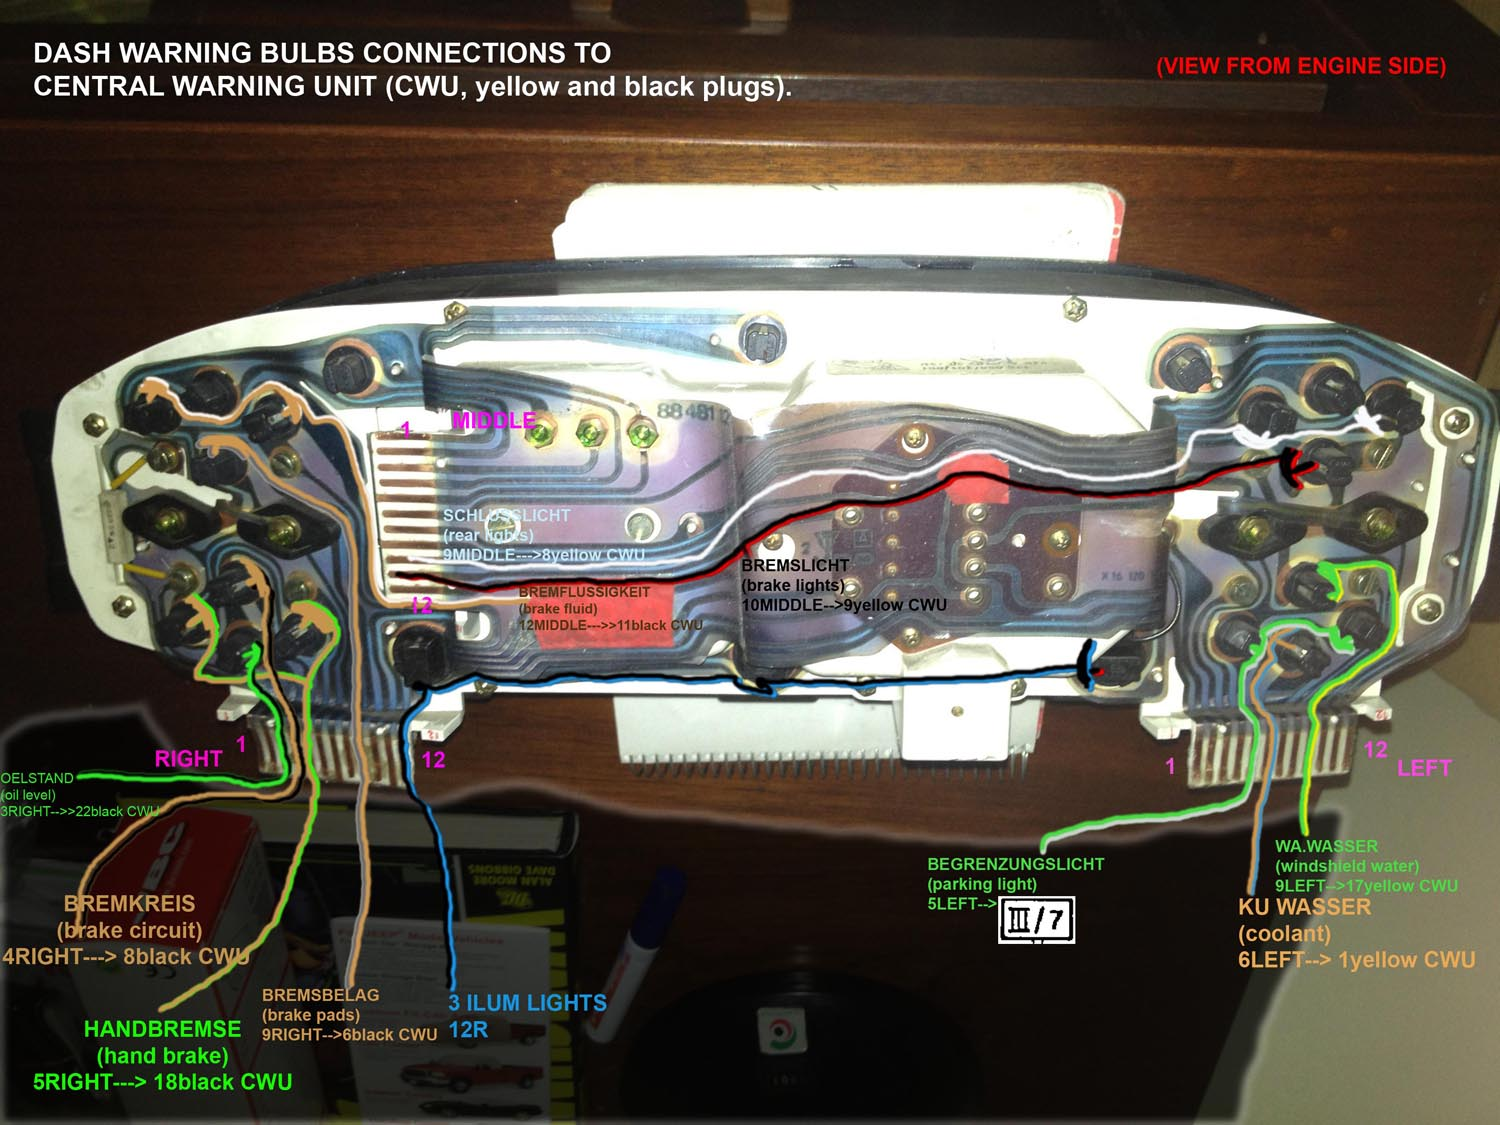 porsche 944 wiring diagrams v8043e1012 diagram instrument cluster and central warning unit with color wires - rennlist discussion forums